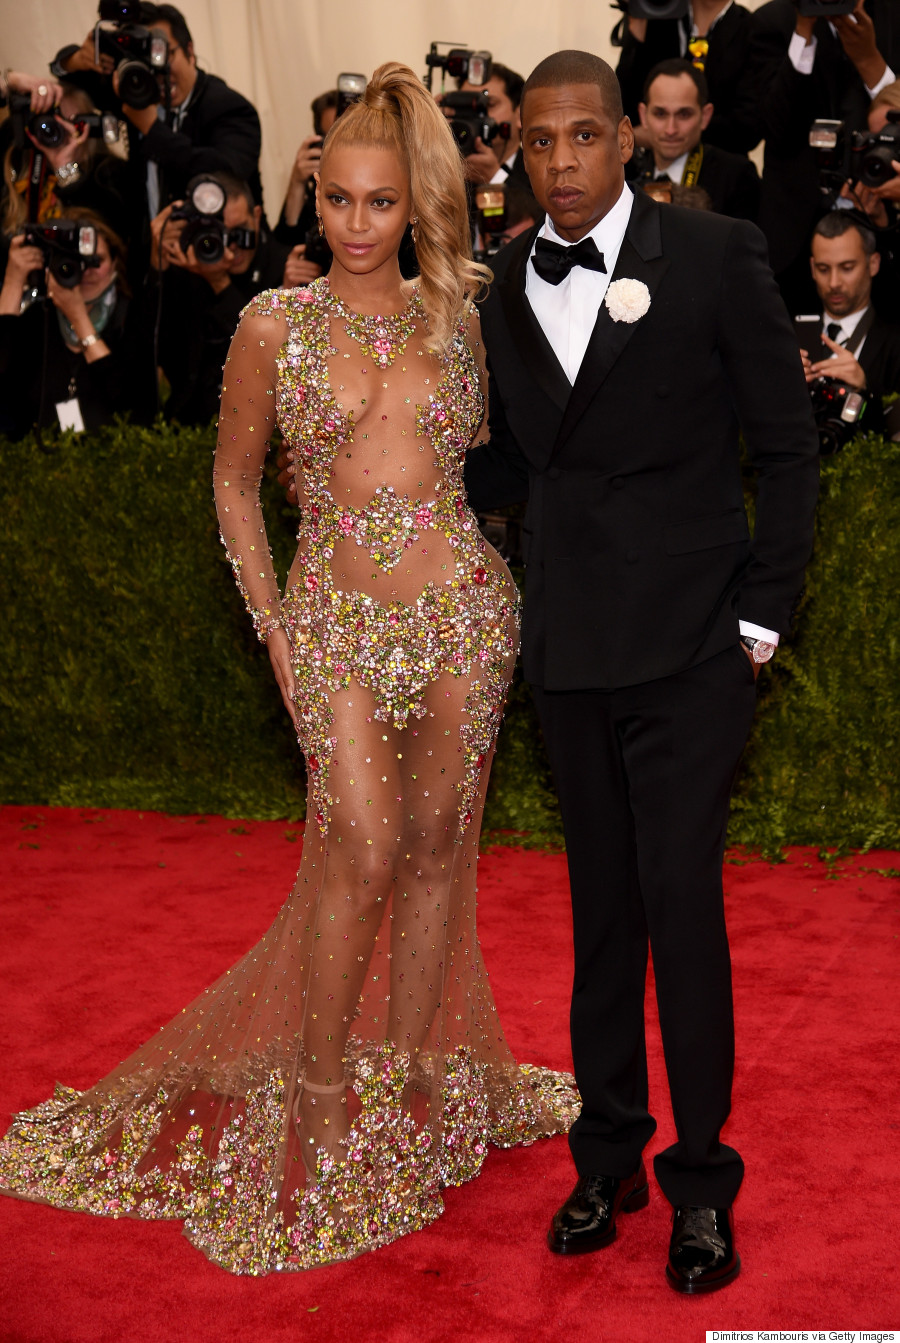 Beyonce in Givenchy Haute Couture, Jay-Z in Givenchy, 2013 *via Getty Images*